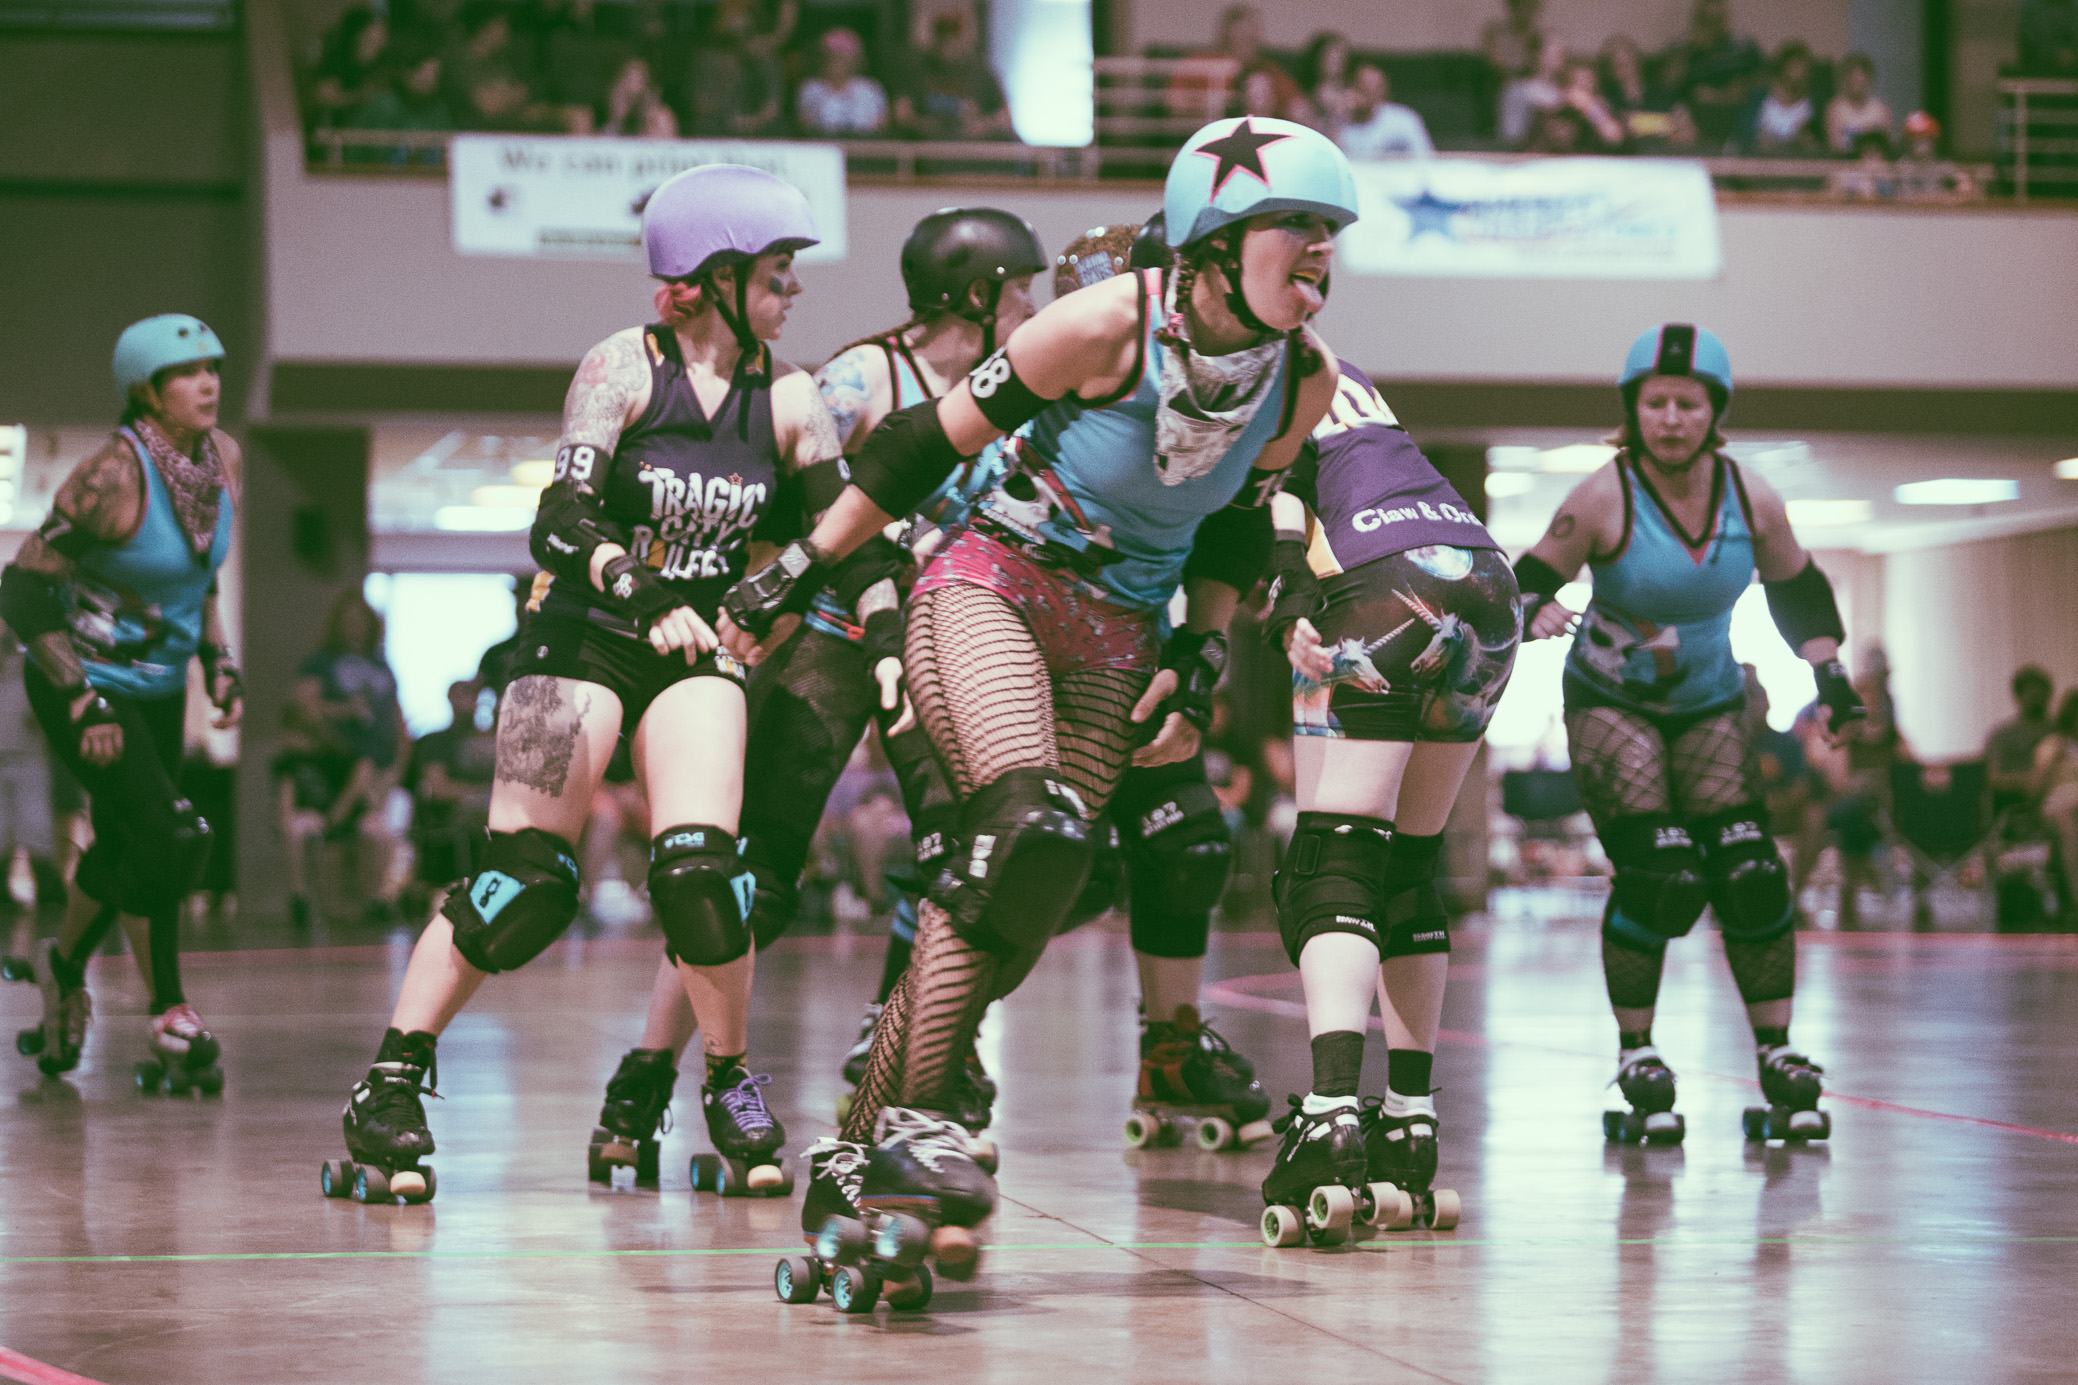 A scene from the roller derby bout between the Tragic City Rollers All-Stars vs. Dixie Derby Girls at Zamora Shrine Center in Irondale, Alabama on May 12th, 2018. (Photo by David A. Smith/DSmithScenes)